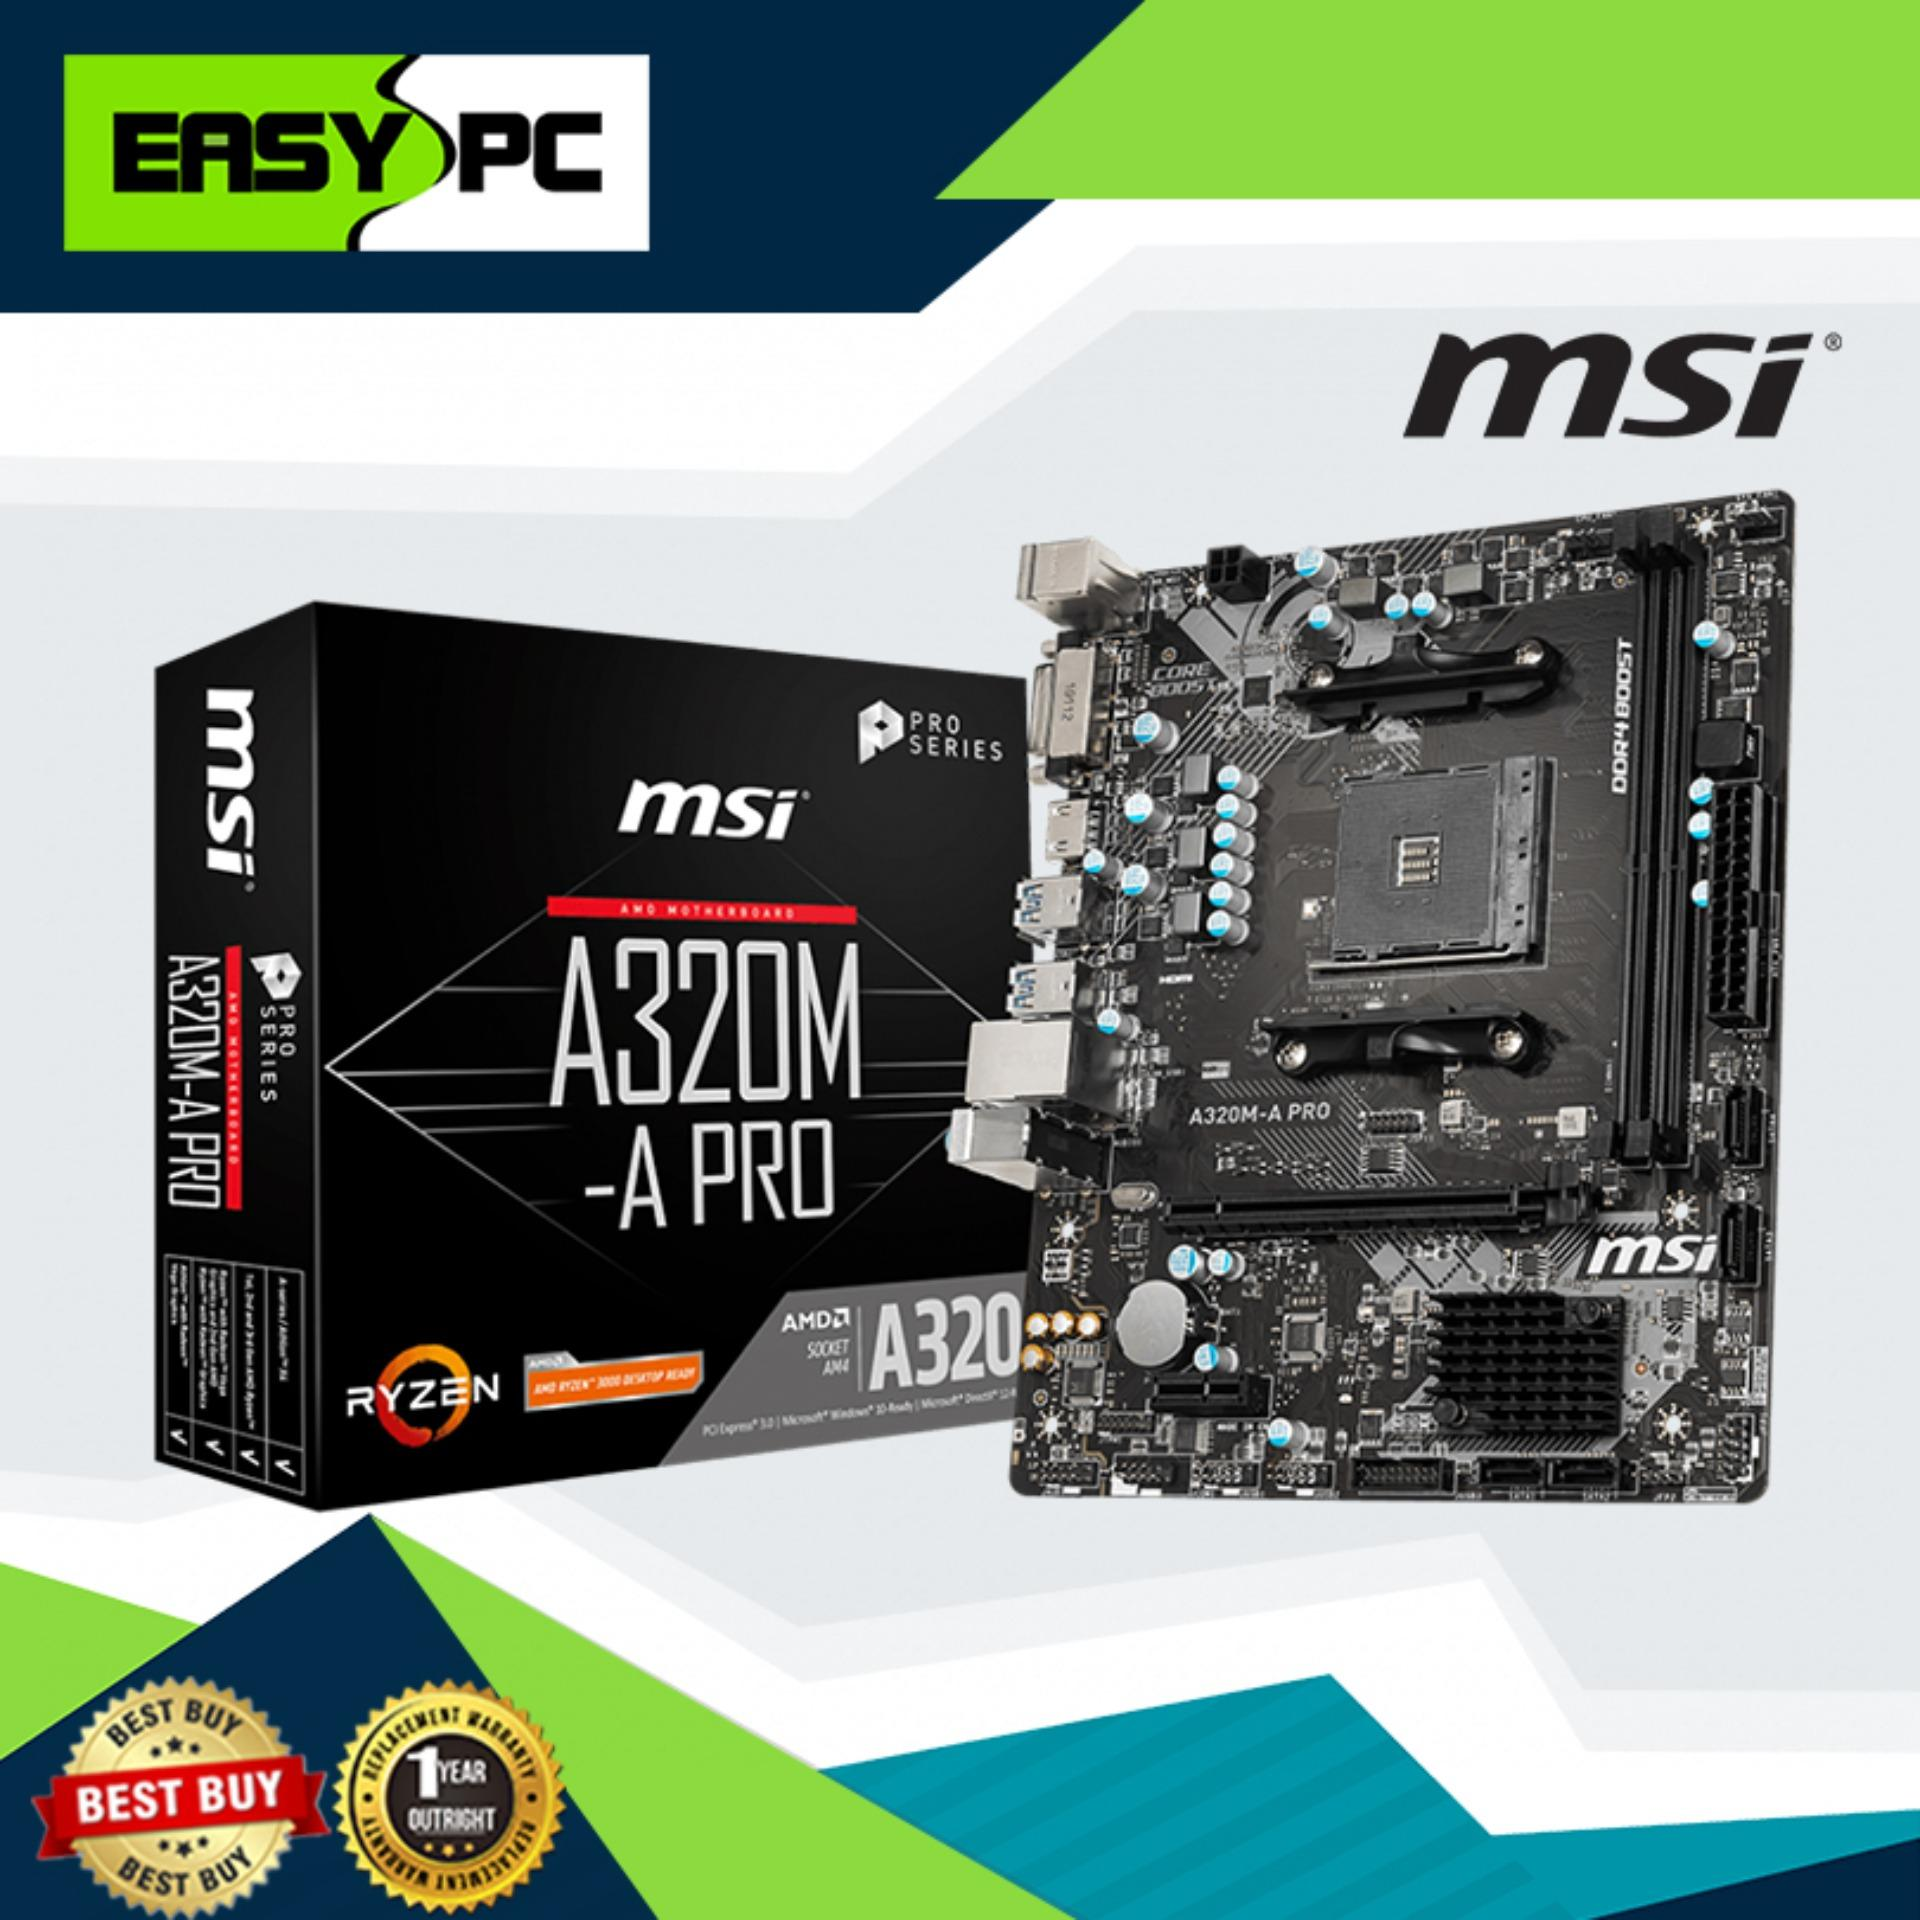 MSI A320M A Pro 3200mhz Max Support Ddr4 Motherboard DVI-D and HDMI Supported, Supports 1st, 2nd and 3rd Gen AMD Ryzen and DDR4 Memory, up to 3200 (OC) MHz Best Combination with Ryzen Processor. Windows 10 compatible. Recommended for Diskless set up.